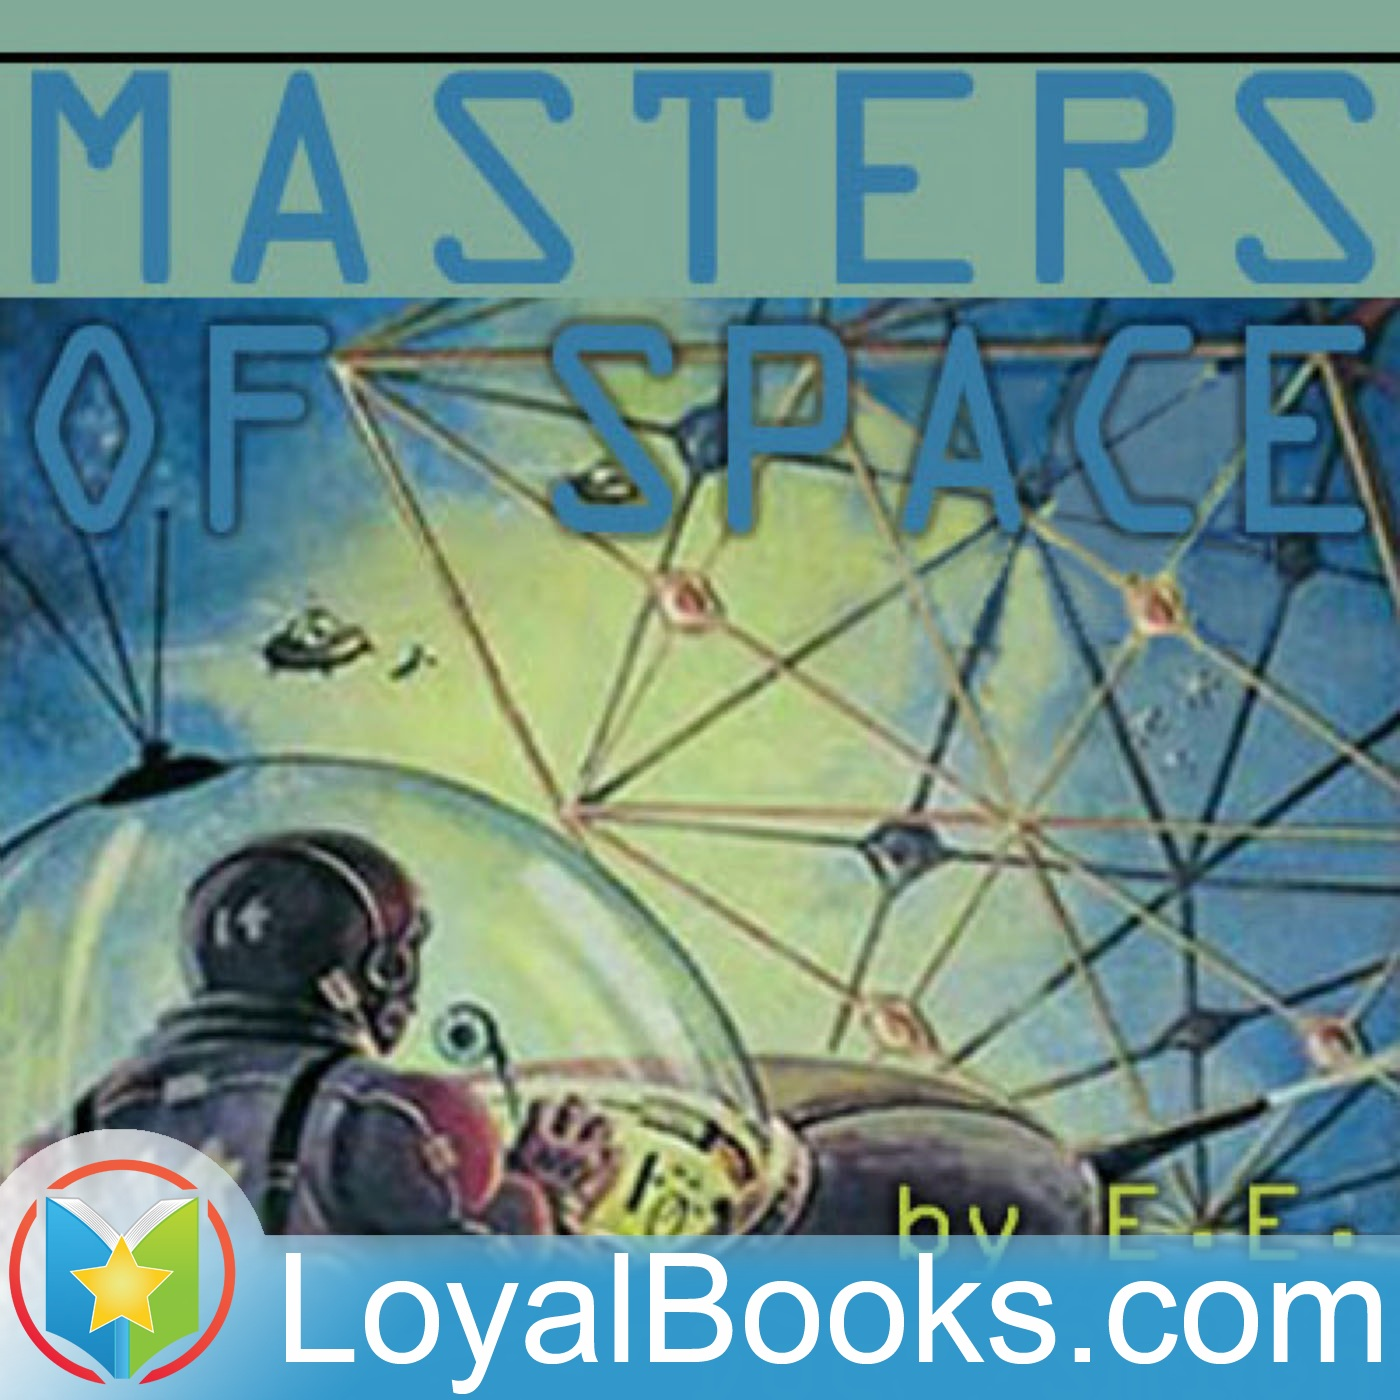 <![CDATA[Masters of Space by Edward Elmer Smith]]>